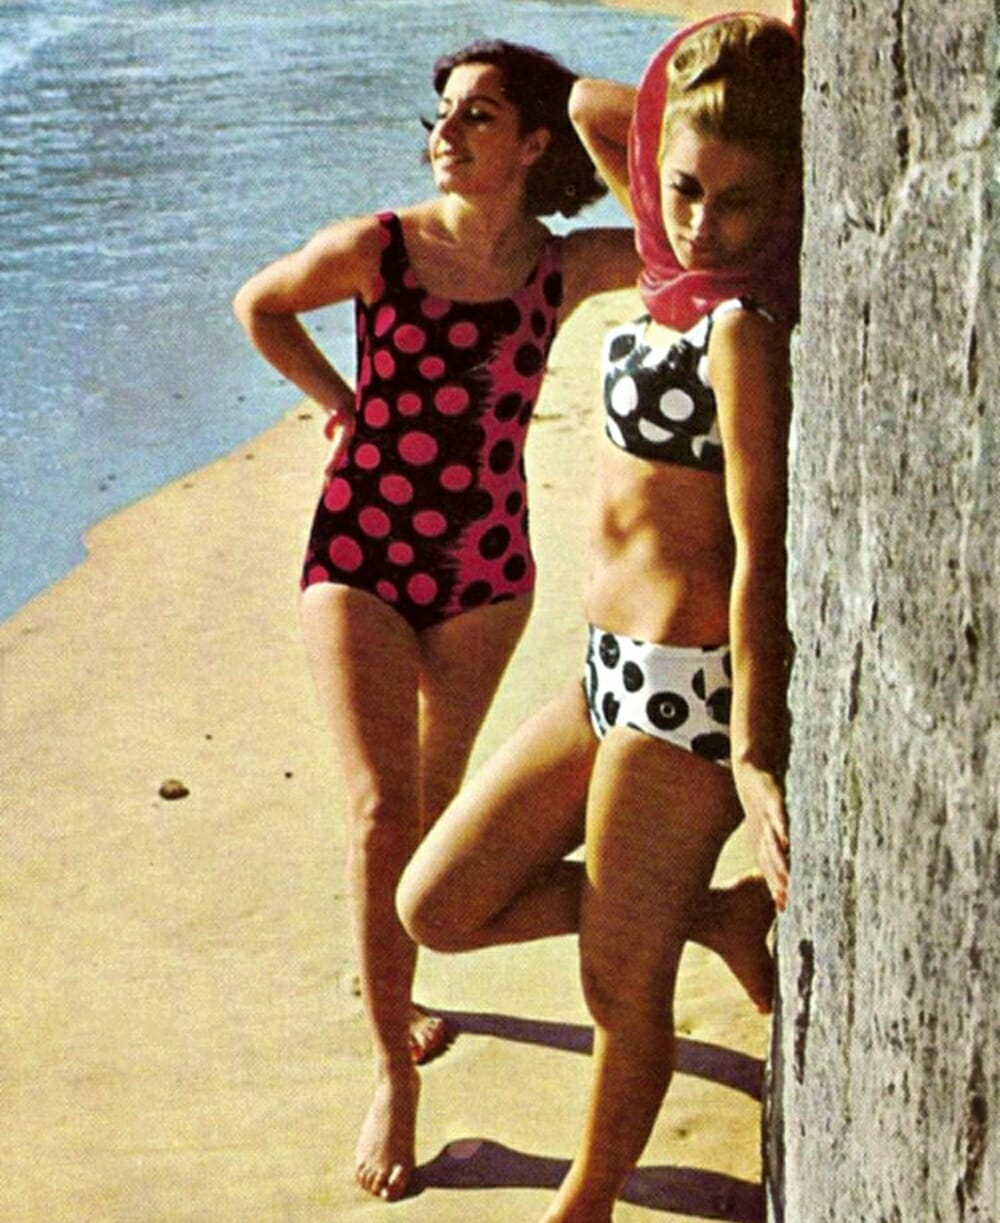 Evolution Of Swimwear - 1970s style